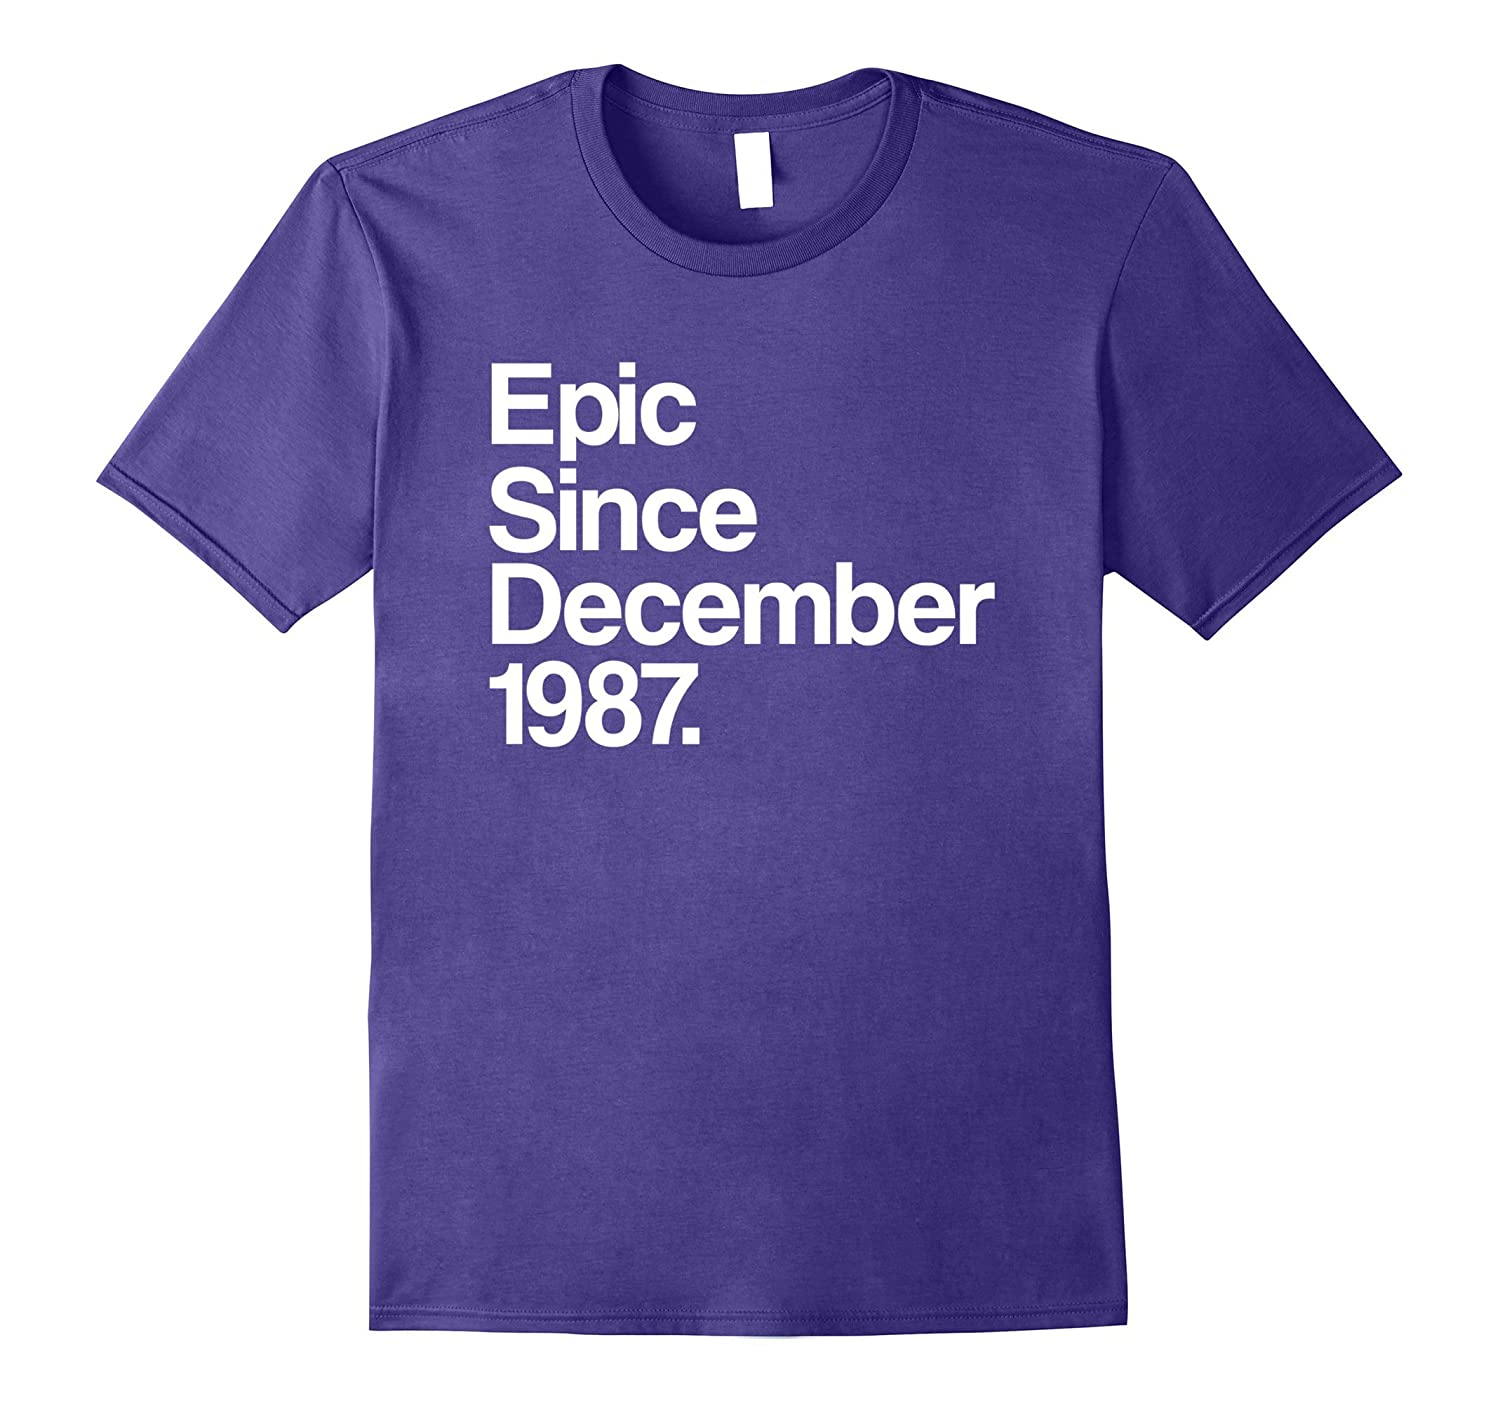 Epic Since December 1987 T-Shirt - 30th Birthday Gift Tee-T-Shirt